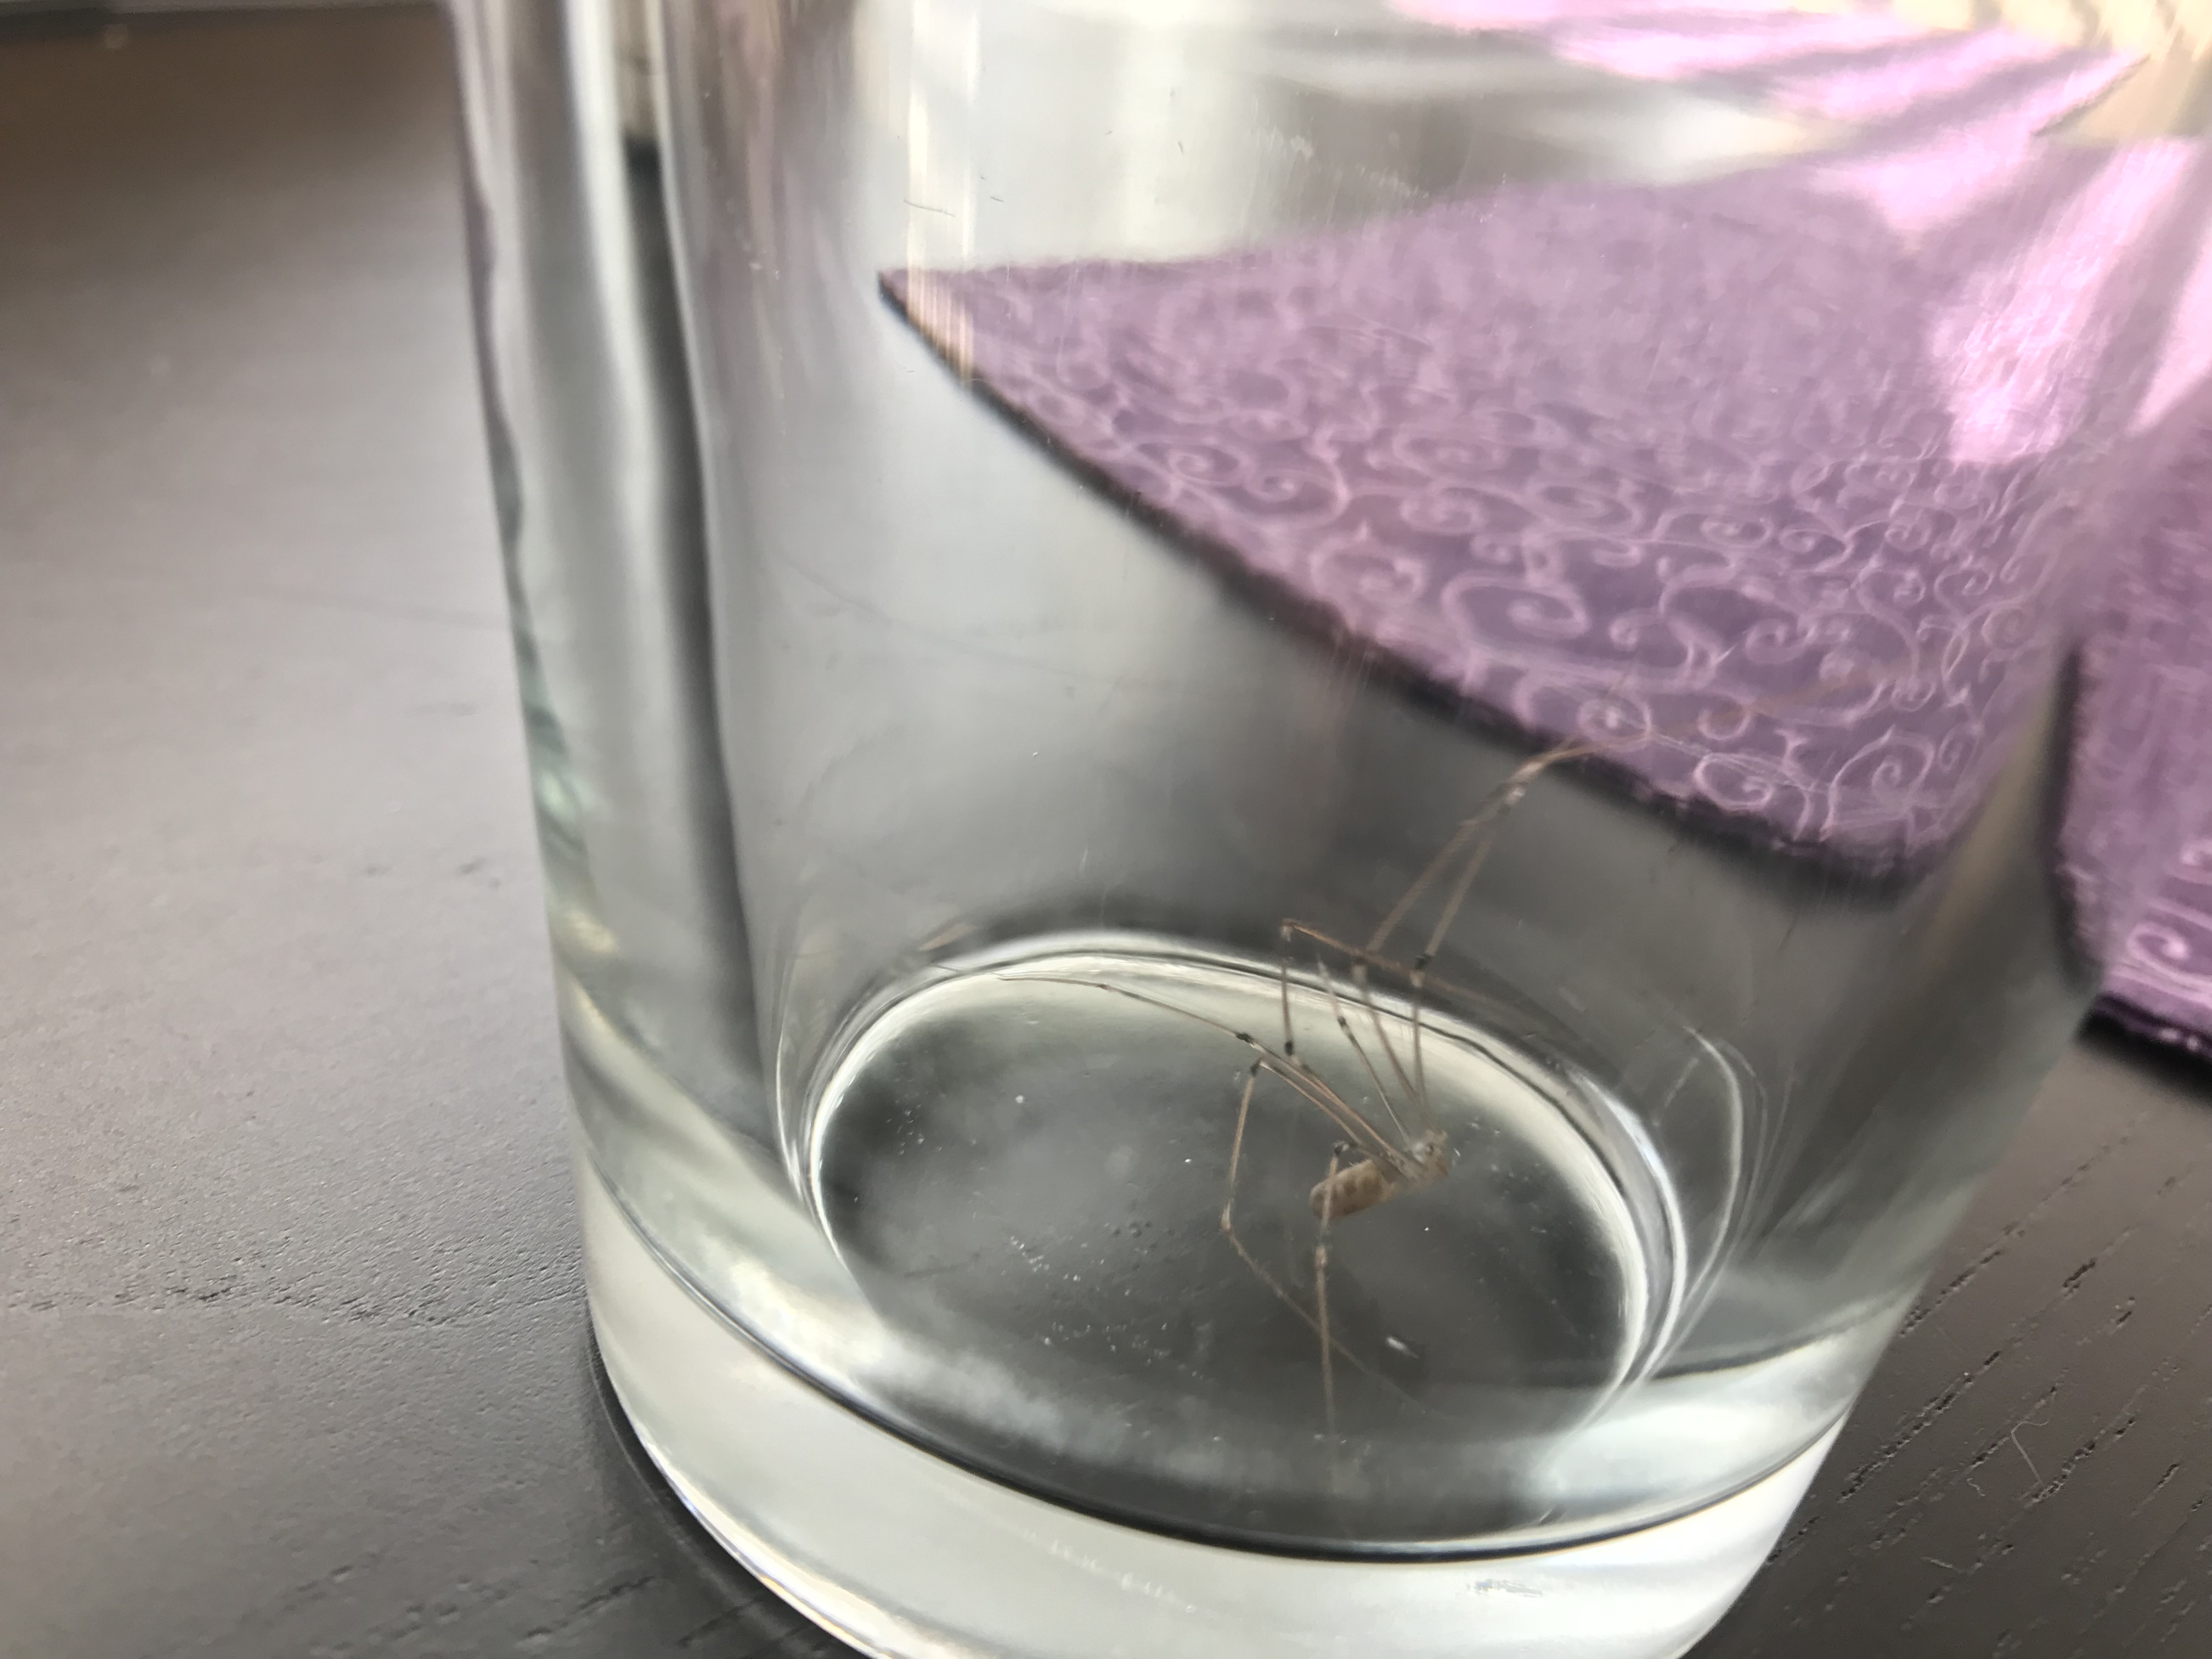 A spider with notched long legs in a glass.